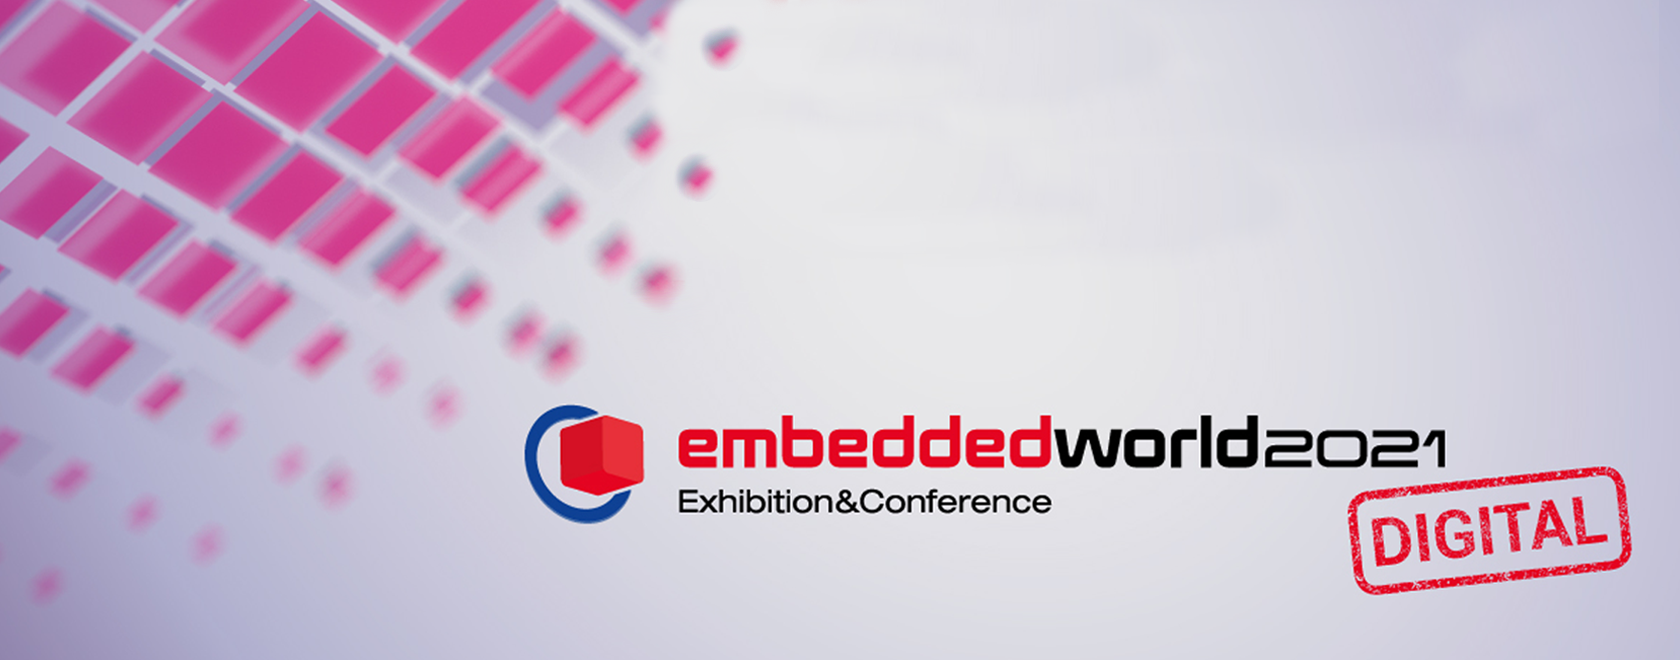 COMPRION at the embedded world 2021 Digital Conference